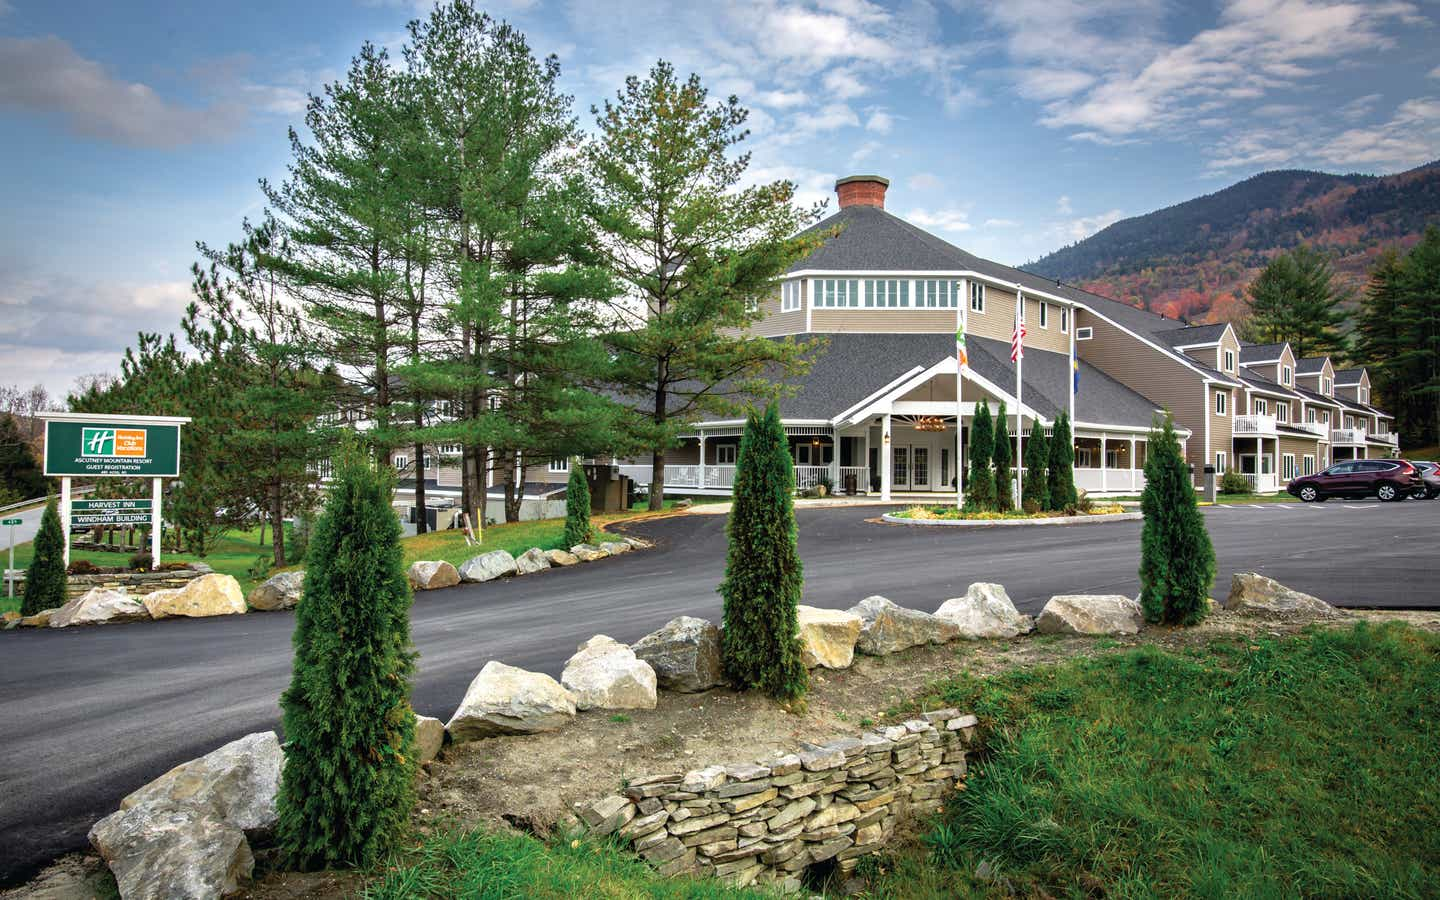 Exterior view of the entrance of Mount Ascutney Resort in Brownsville, VT